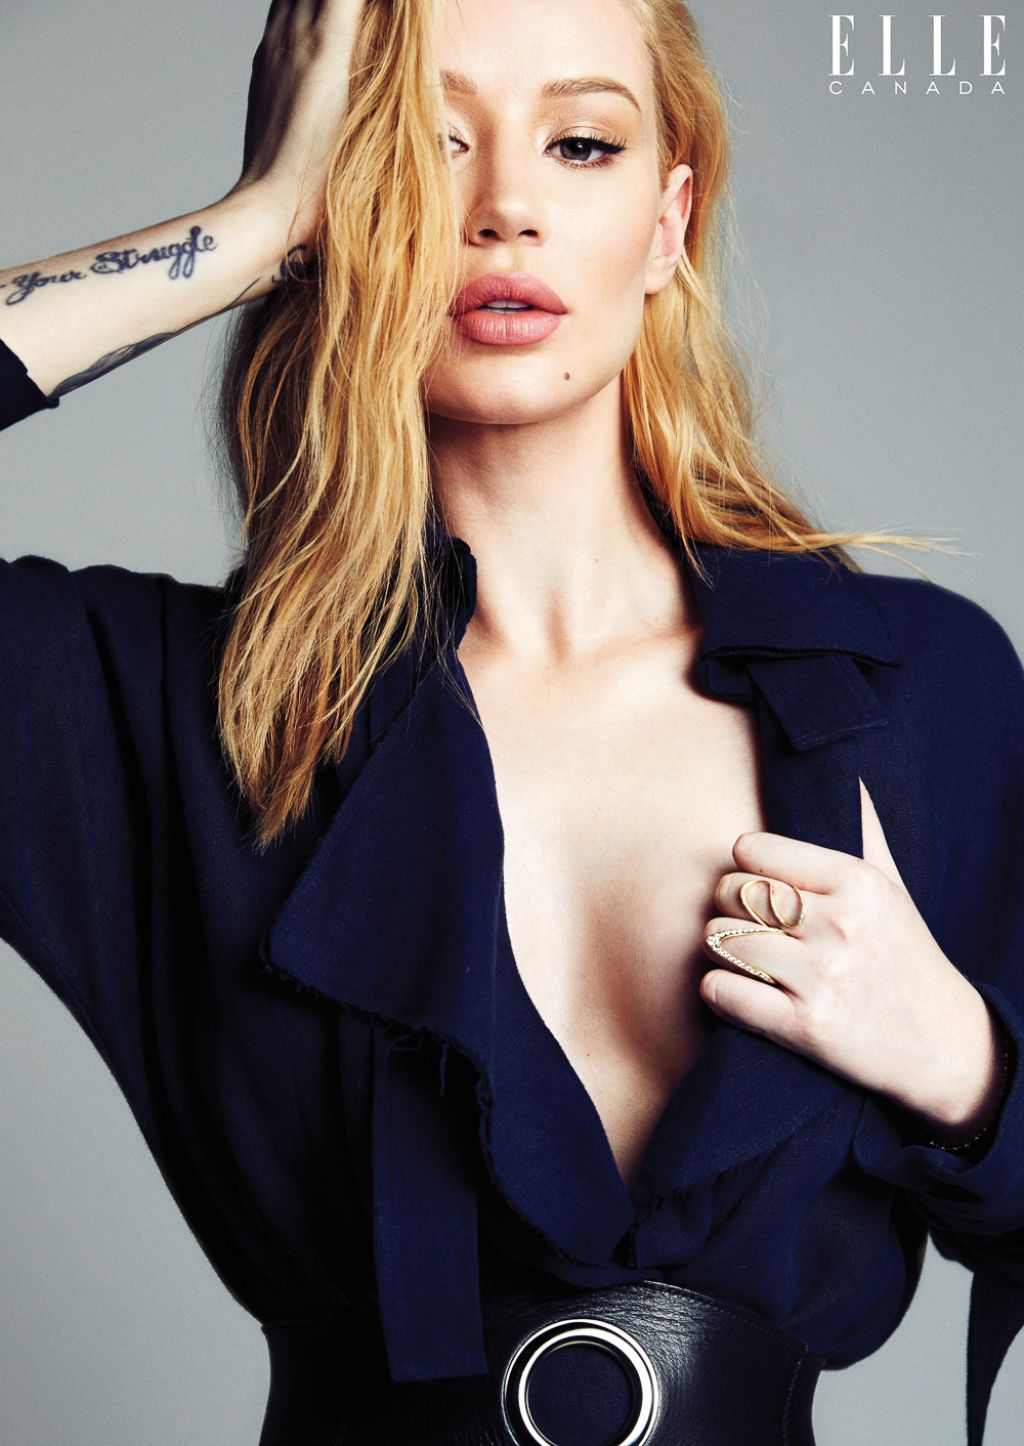 Iggy Azalea - Elle Magazine Canada April 2016 Photos-4474